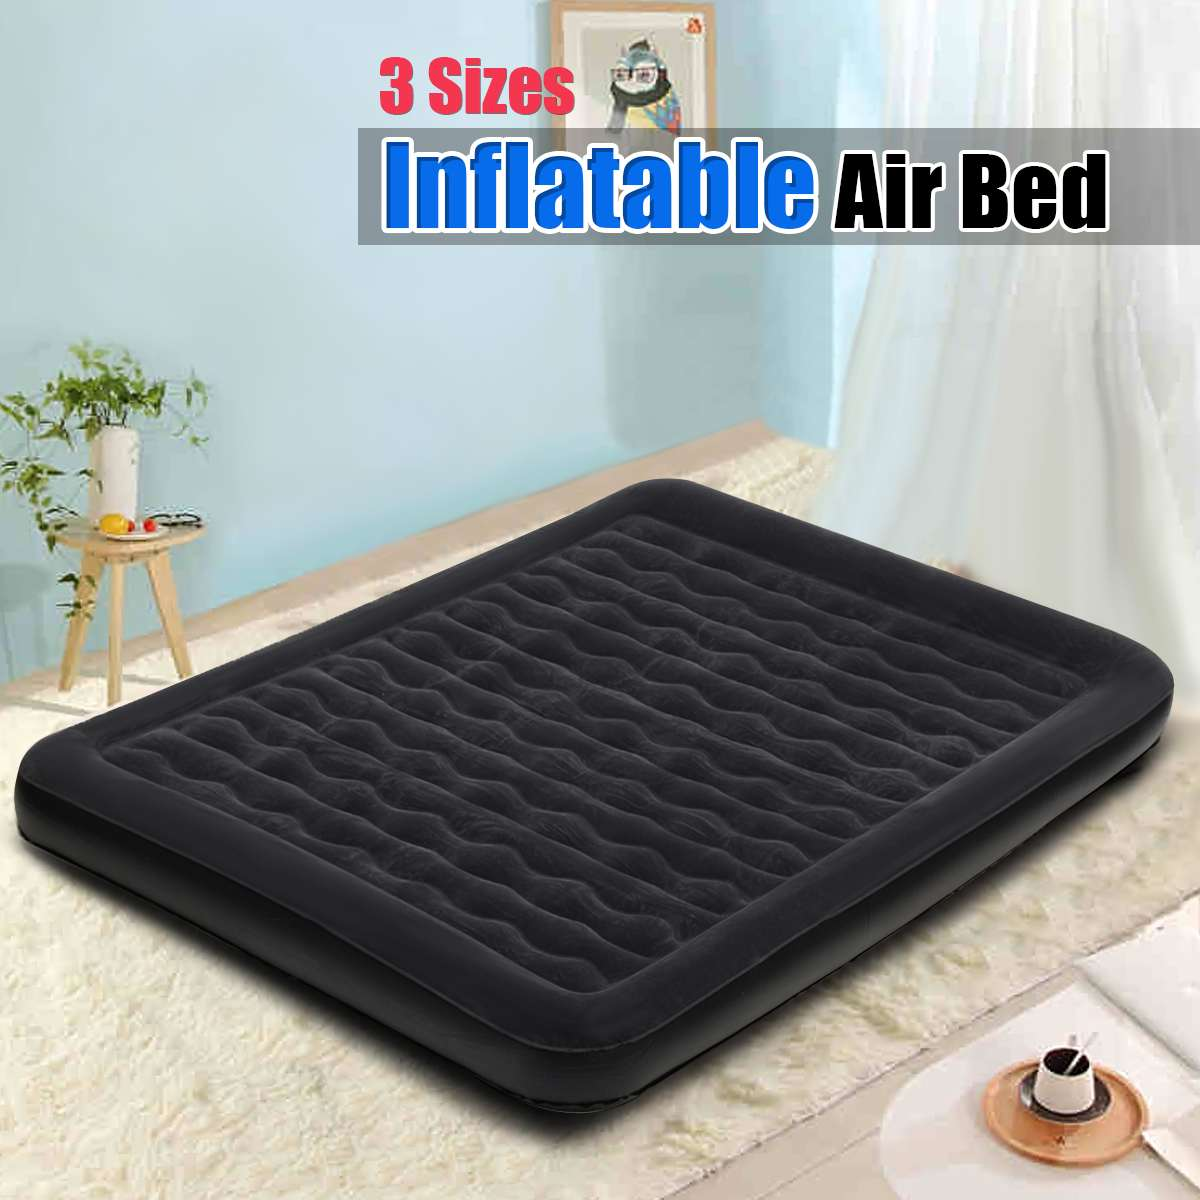 Camping & Hiking 152*203*22cm Air Mattress Cartoon Back Mattress Home Bedroom Air Bed Beach Mat Inflatable Mattress With Electric Pump Camping Mat